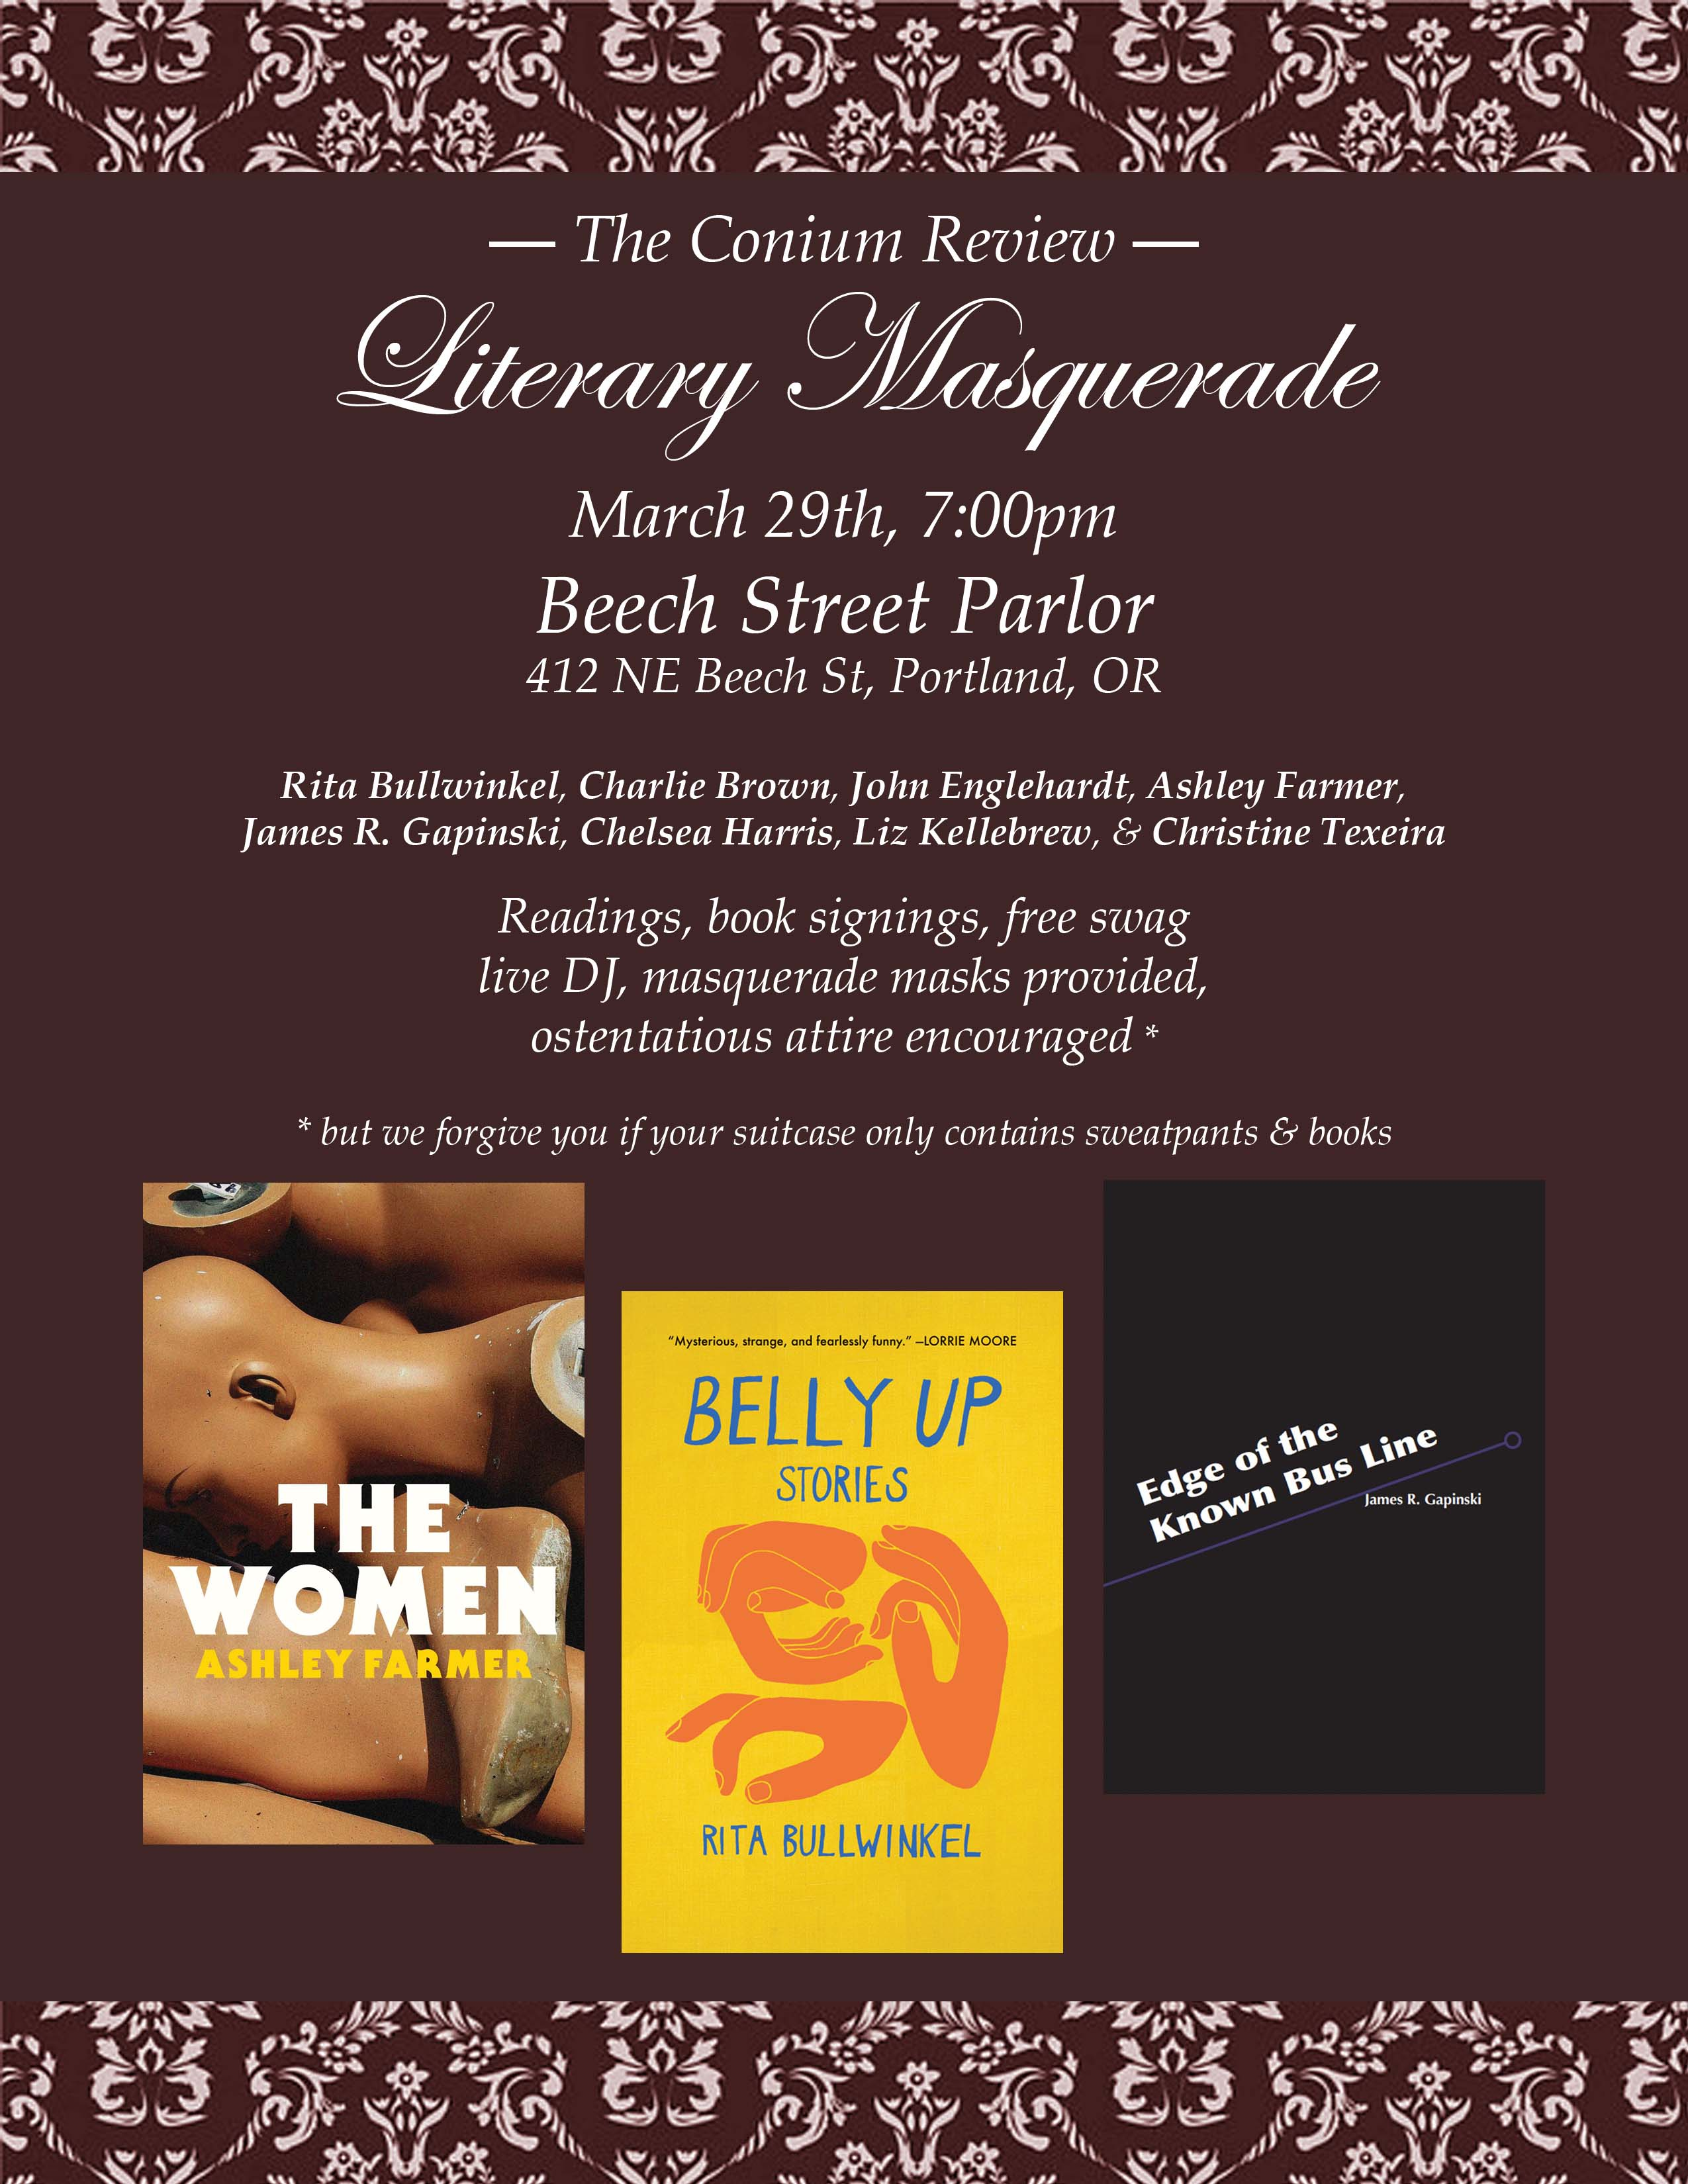 Flyer for Literary Masquerade event